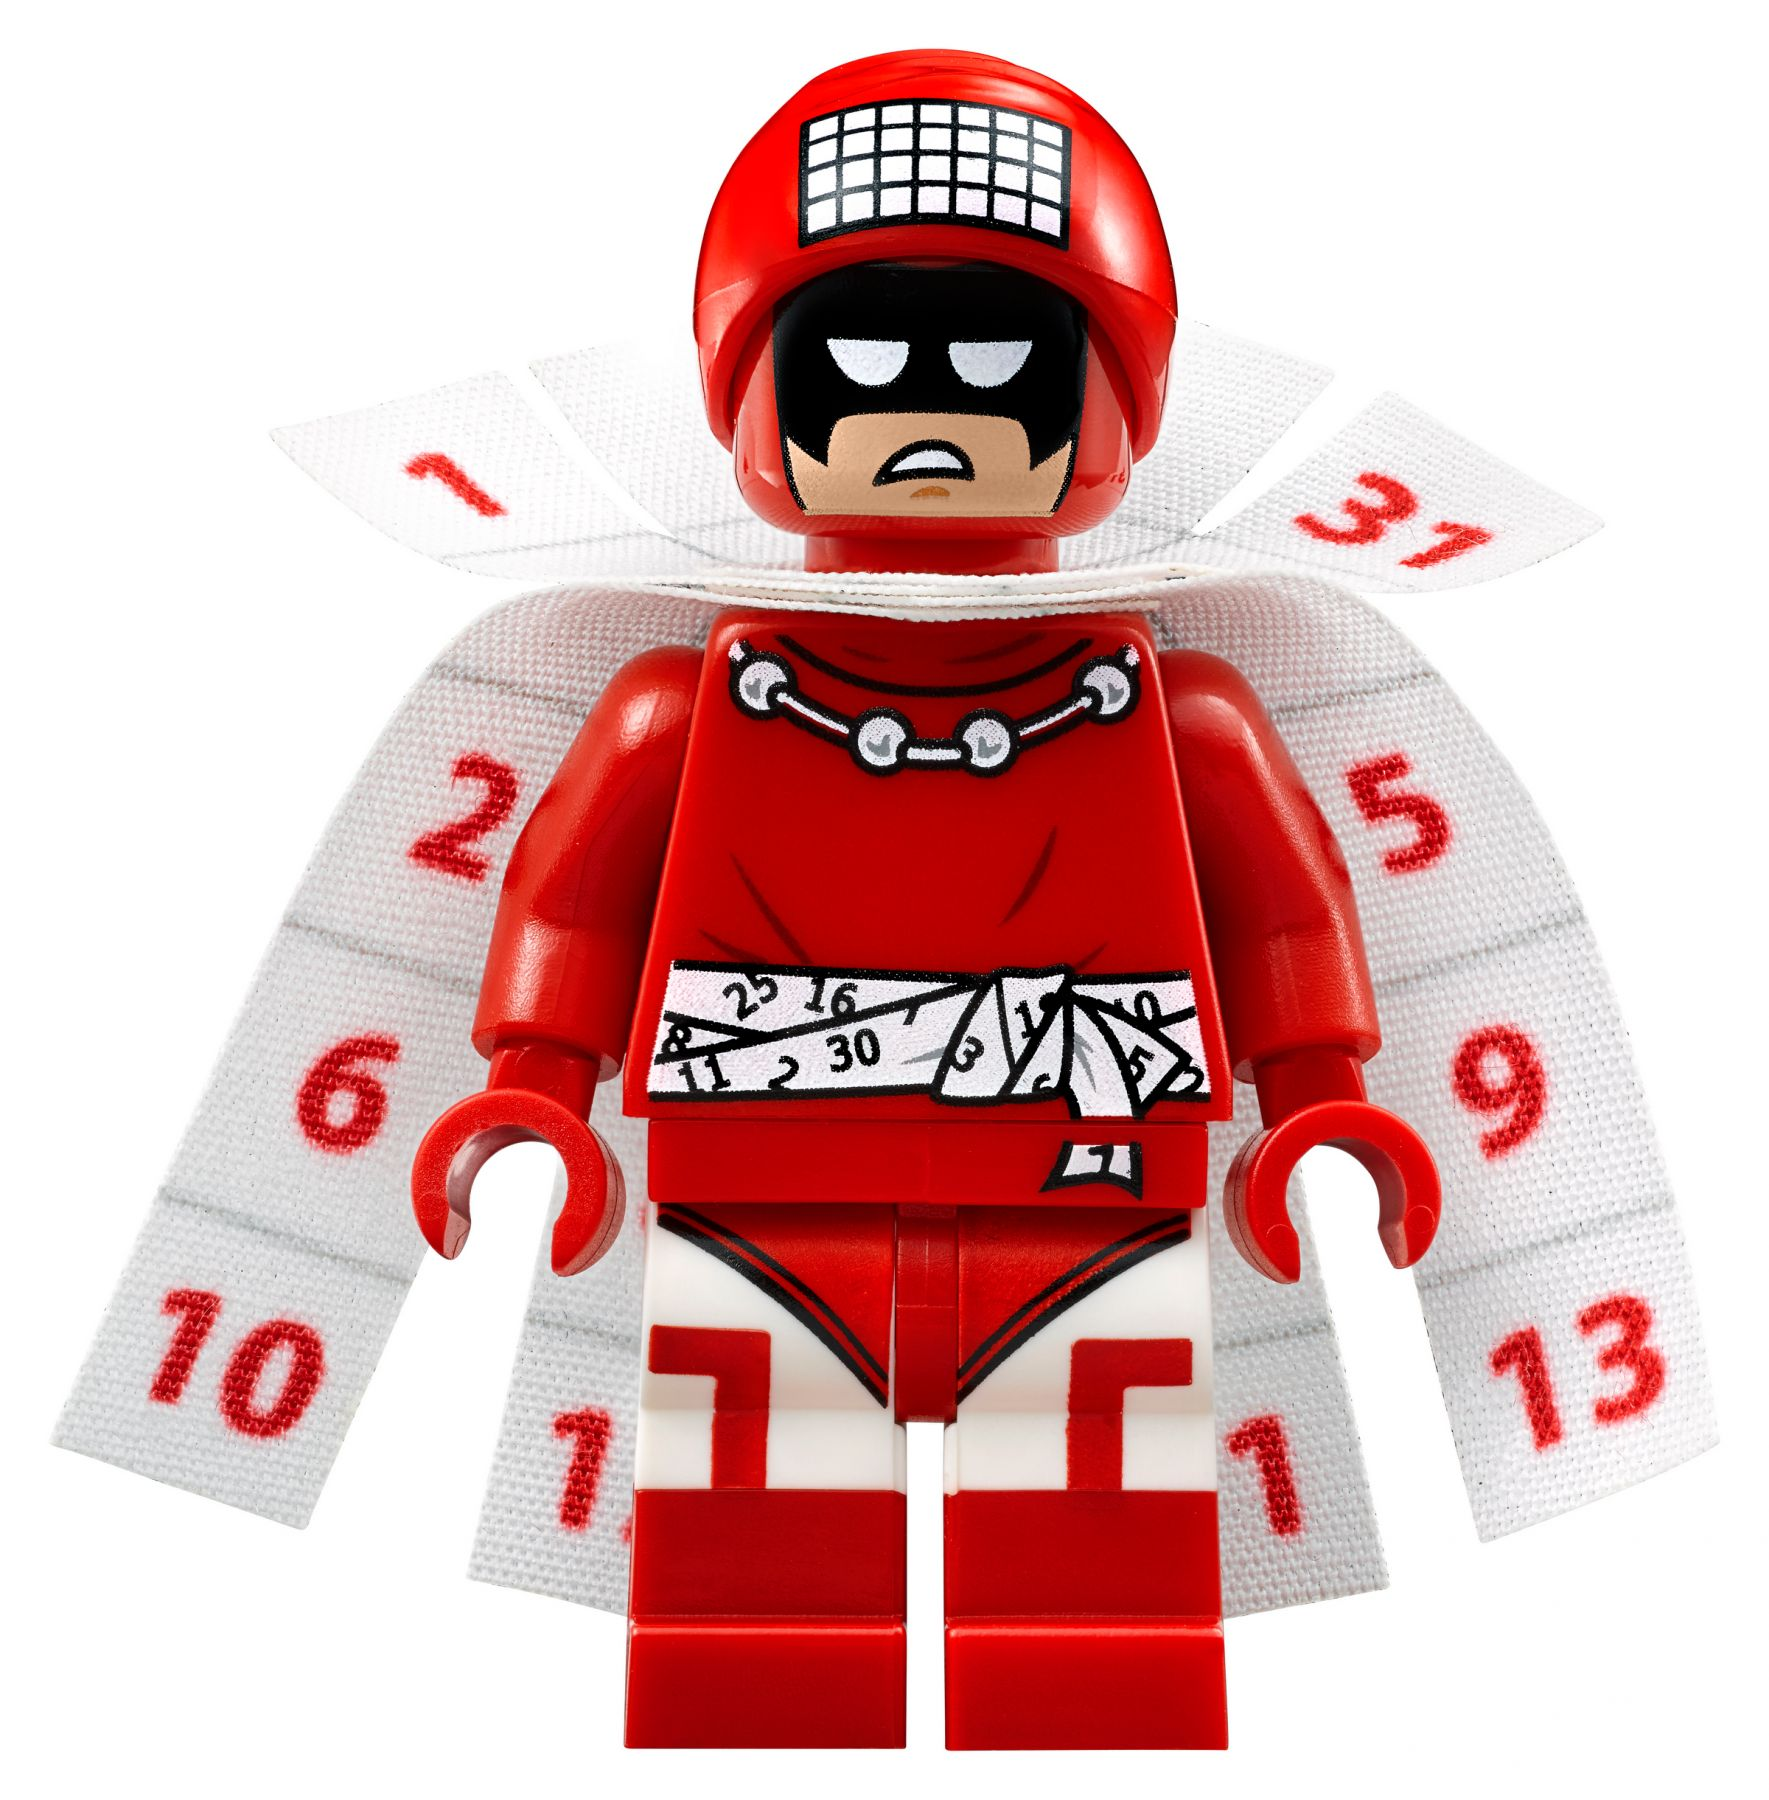 LEGO The LEGO Batman Movie 70903 The Riddler™: Riddle Racer LEGO_70903_alt8.jpg